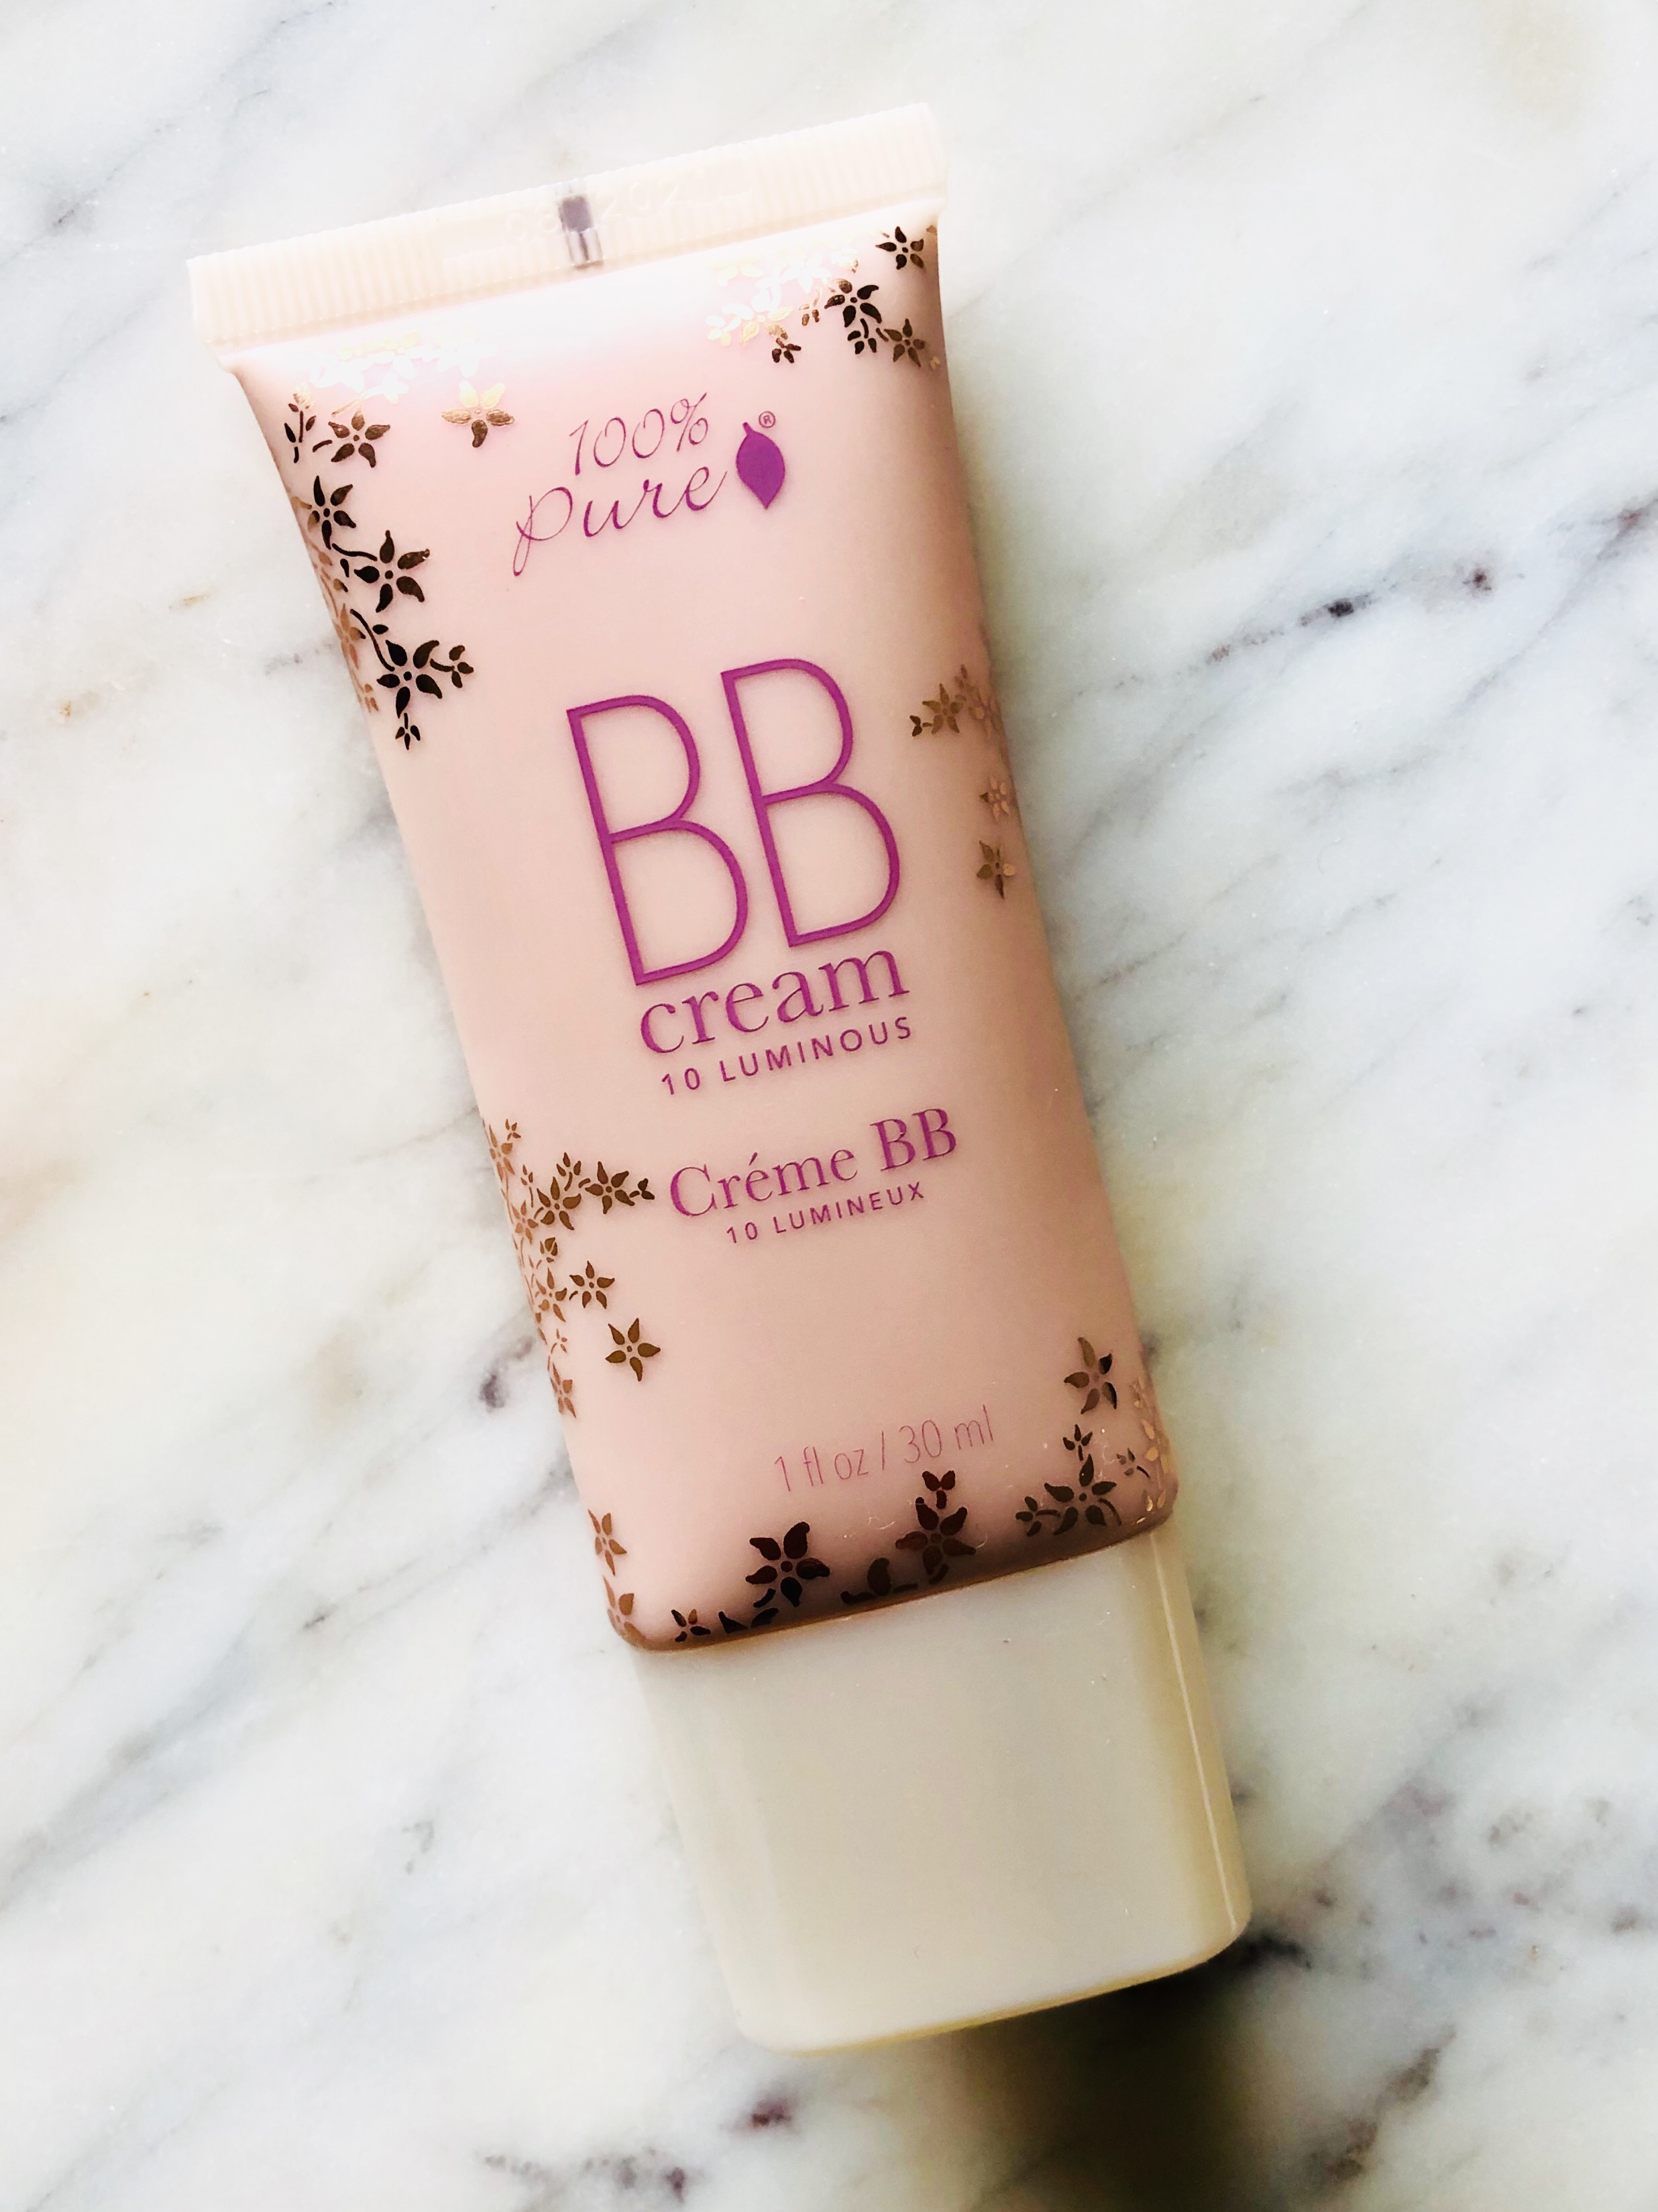 "100% Pure BB Cream in Luminous - $42 - Here's the quick SCORECARD breakdown. Each question is rated on a scale of 1 to 5, 5 being the best:1. How do the ingredients look (EWG.org ratings)?- 4: Looking good. I only found one '5' ingredient. See more on that below.2. How's the coverage?- 4: Sheer, luminous, exactly what I was looking for to achieve a dewy look. It isn't however, what the brand states: ""a skincare/makeup hybrid that is your primer, soothing treatment, concealer and foundation in one."" Primer, yes. Soothing, sure. Concealer and foundation? Not so much.3. Does it last?- 4: It lasted throughout the day like a champ and looked natural while doing it!4. Is it non-irritating?- 5: No irritation whatsoever.5. Does it blend and build well?- 5: It builds, but really doesn't need to be layered upon. It does play SUPER well with everything else I apply. I find myself using it as a primer more than anything.6. Is it an inclusive shade range?- 2: Three shades just isn't enough. Opportunity to grow here!7. How conscious is the brand? Cruelty-free, sustainable, etc.- 3: The plastic packaging, even if recycled and recyclable, gave it the 'dings' here. Everything else was on point.FINAL SCORE:26/35"